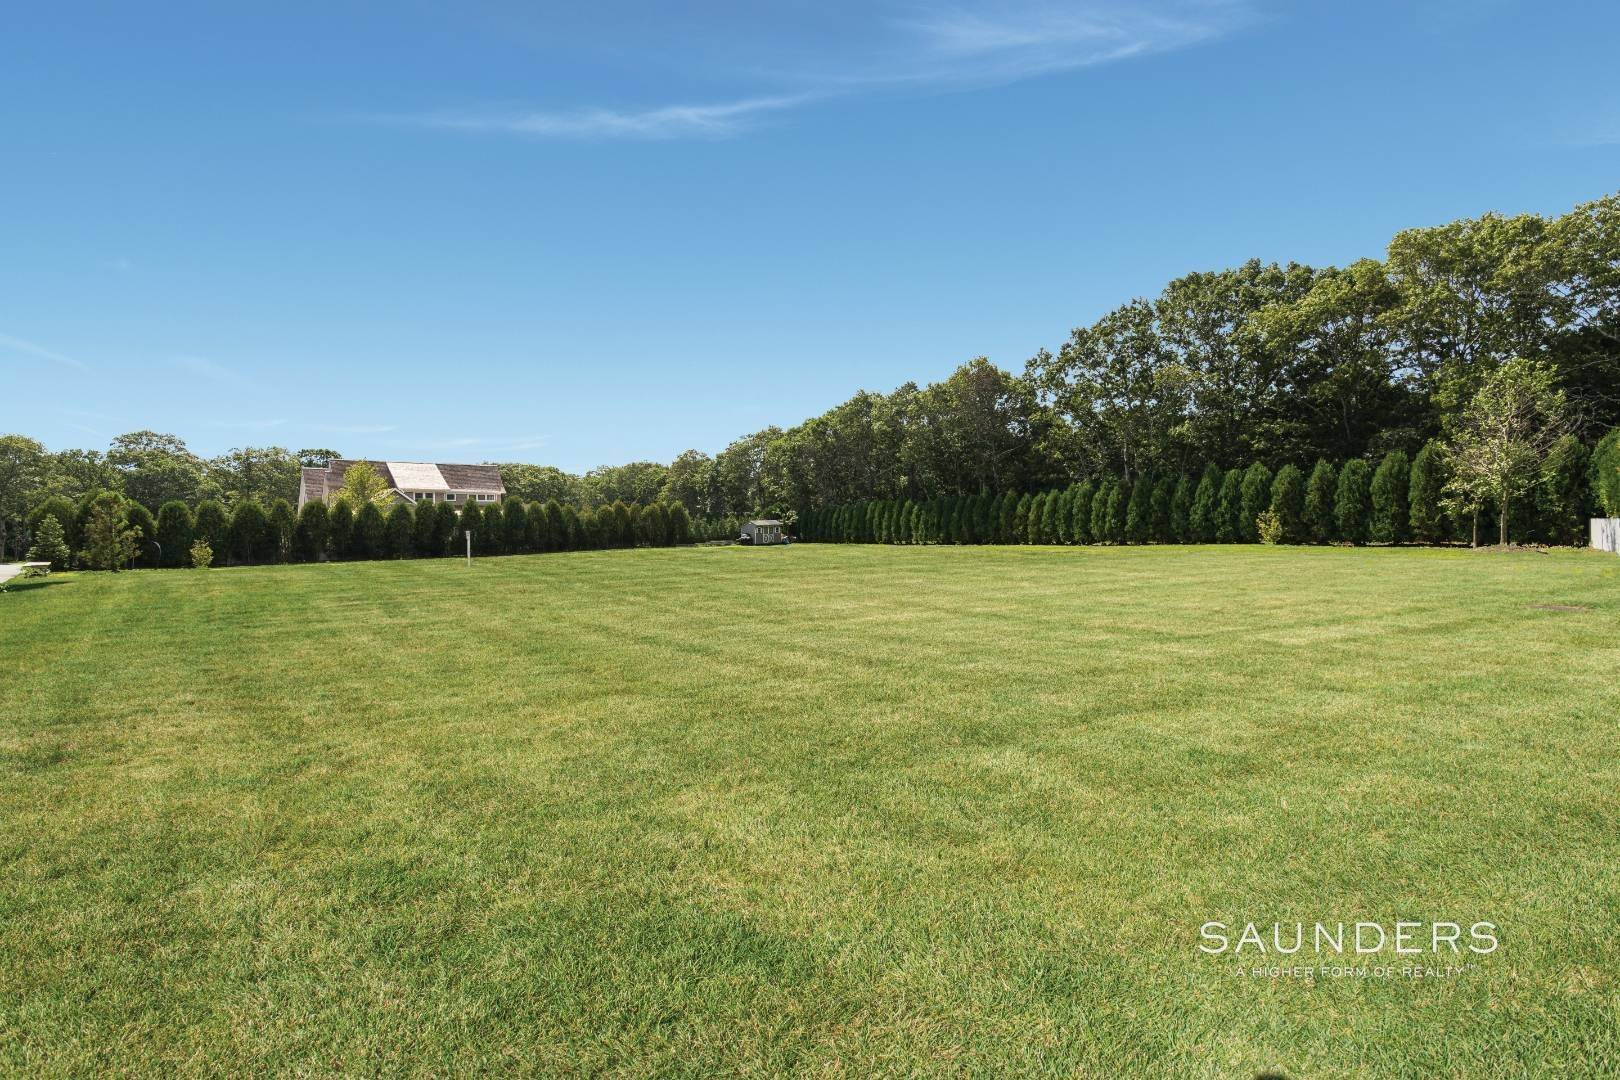 Land for Sale at Vacant Land Opportunity Center Of The Village Of Quogue 129 Montauk Highway, Quogue Village, Southampton Town, NY 11959